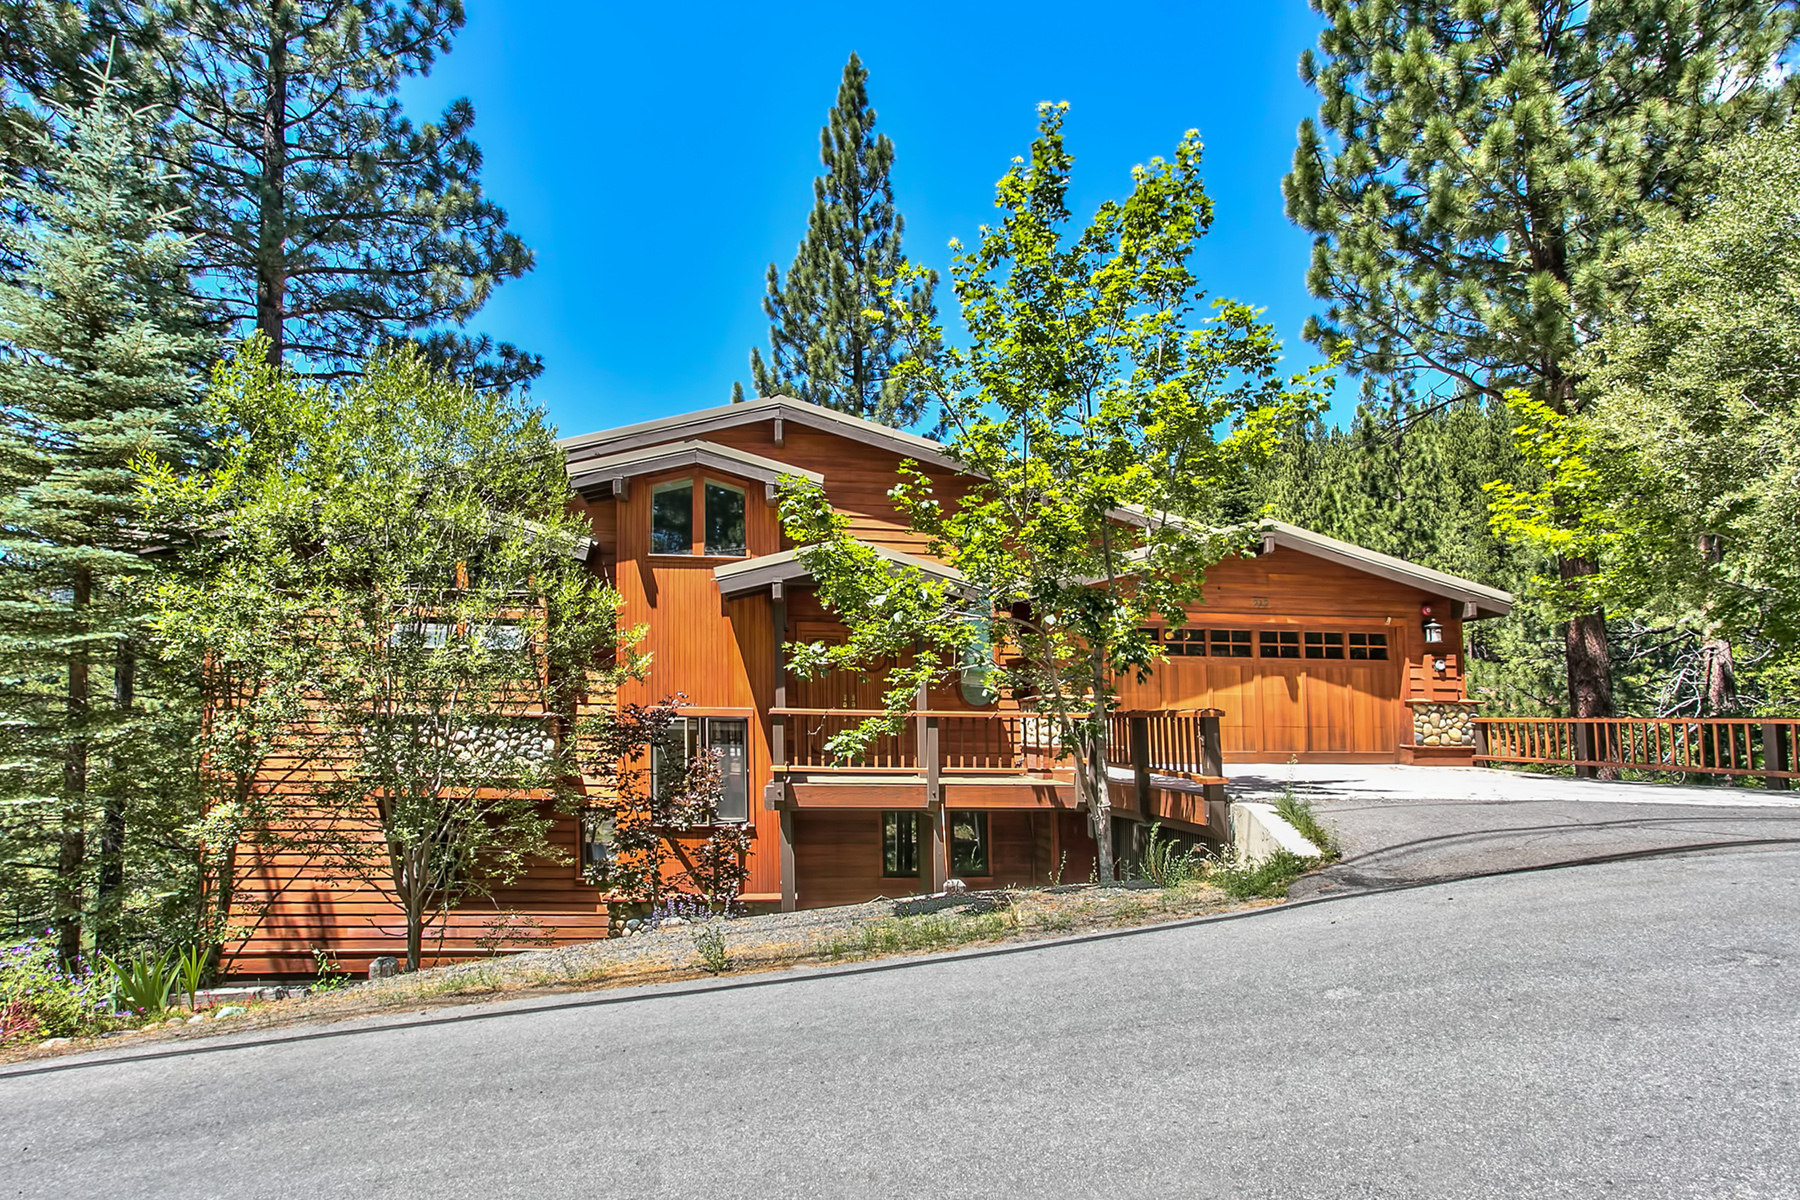 Maison unifamiliale pour l Vente à 515 Sugarpine Drive Incline Village, Nevada, 89451 Lake Tahoe, États-Unis